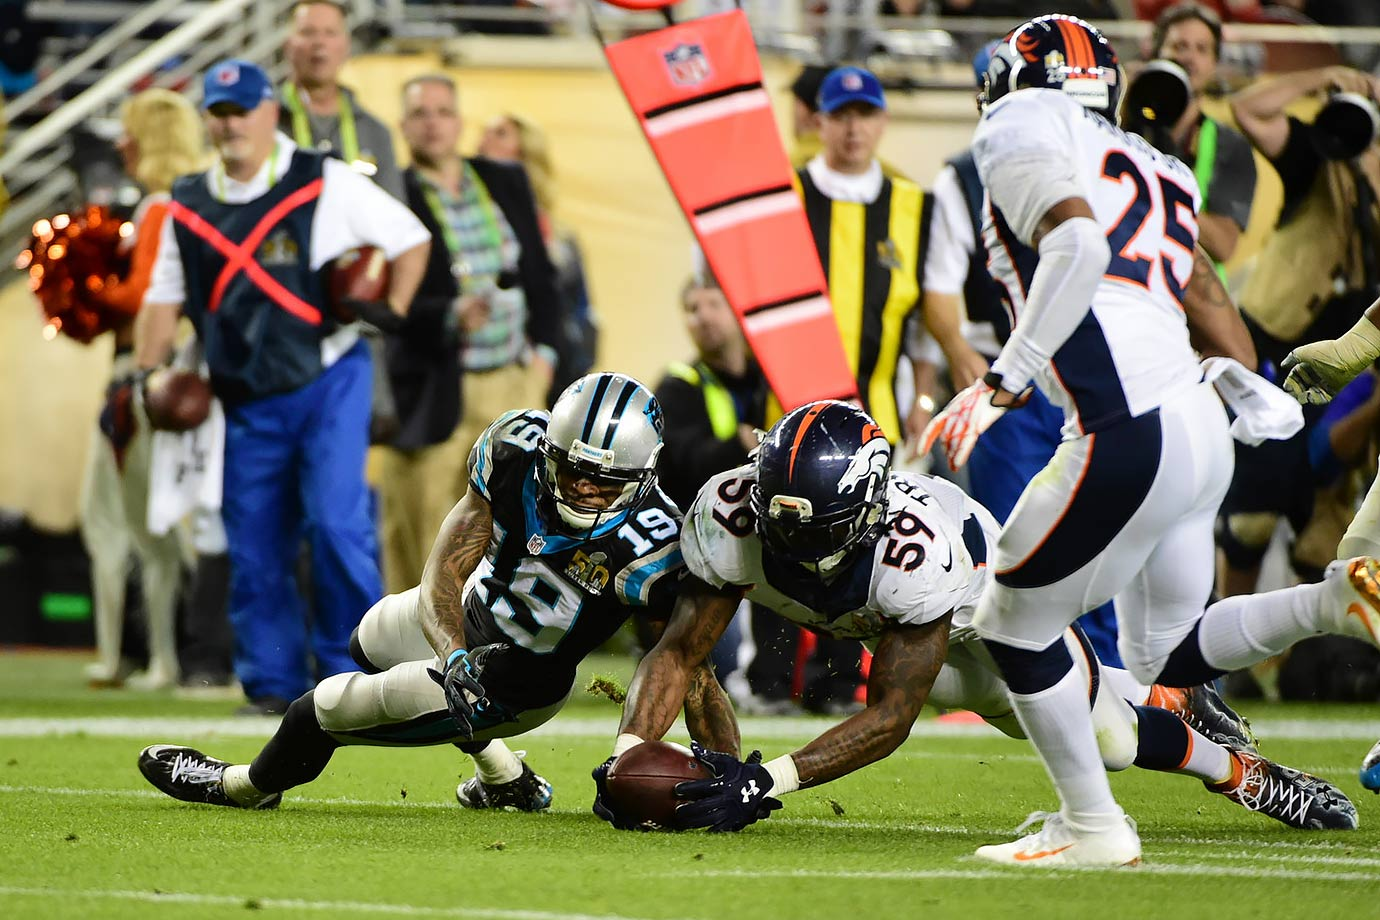 Danny Trevathan beats Ted Ginn Jr. to a loose ball fumbled after an interception by TJ Ward in the third quarter.